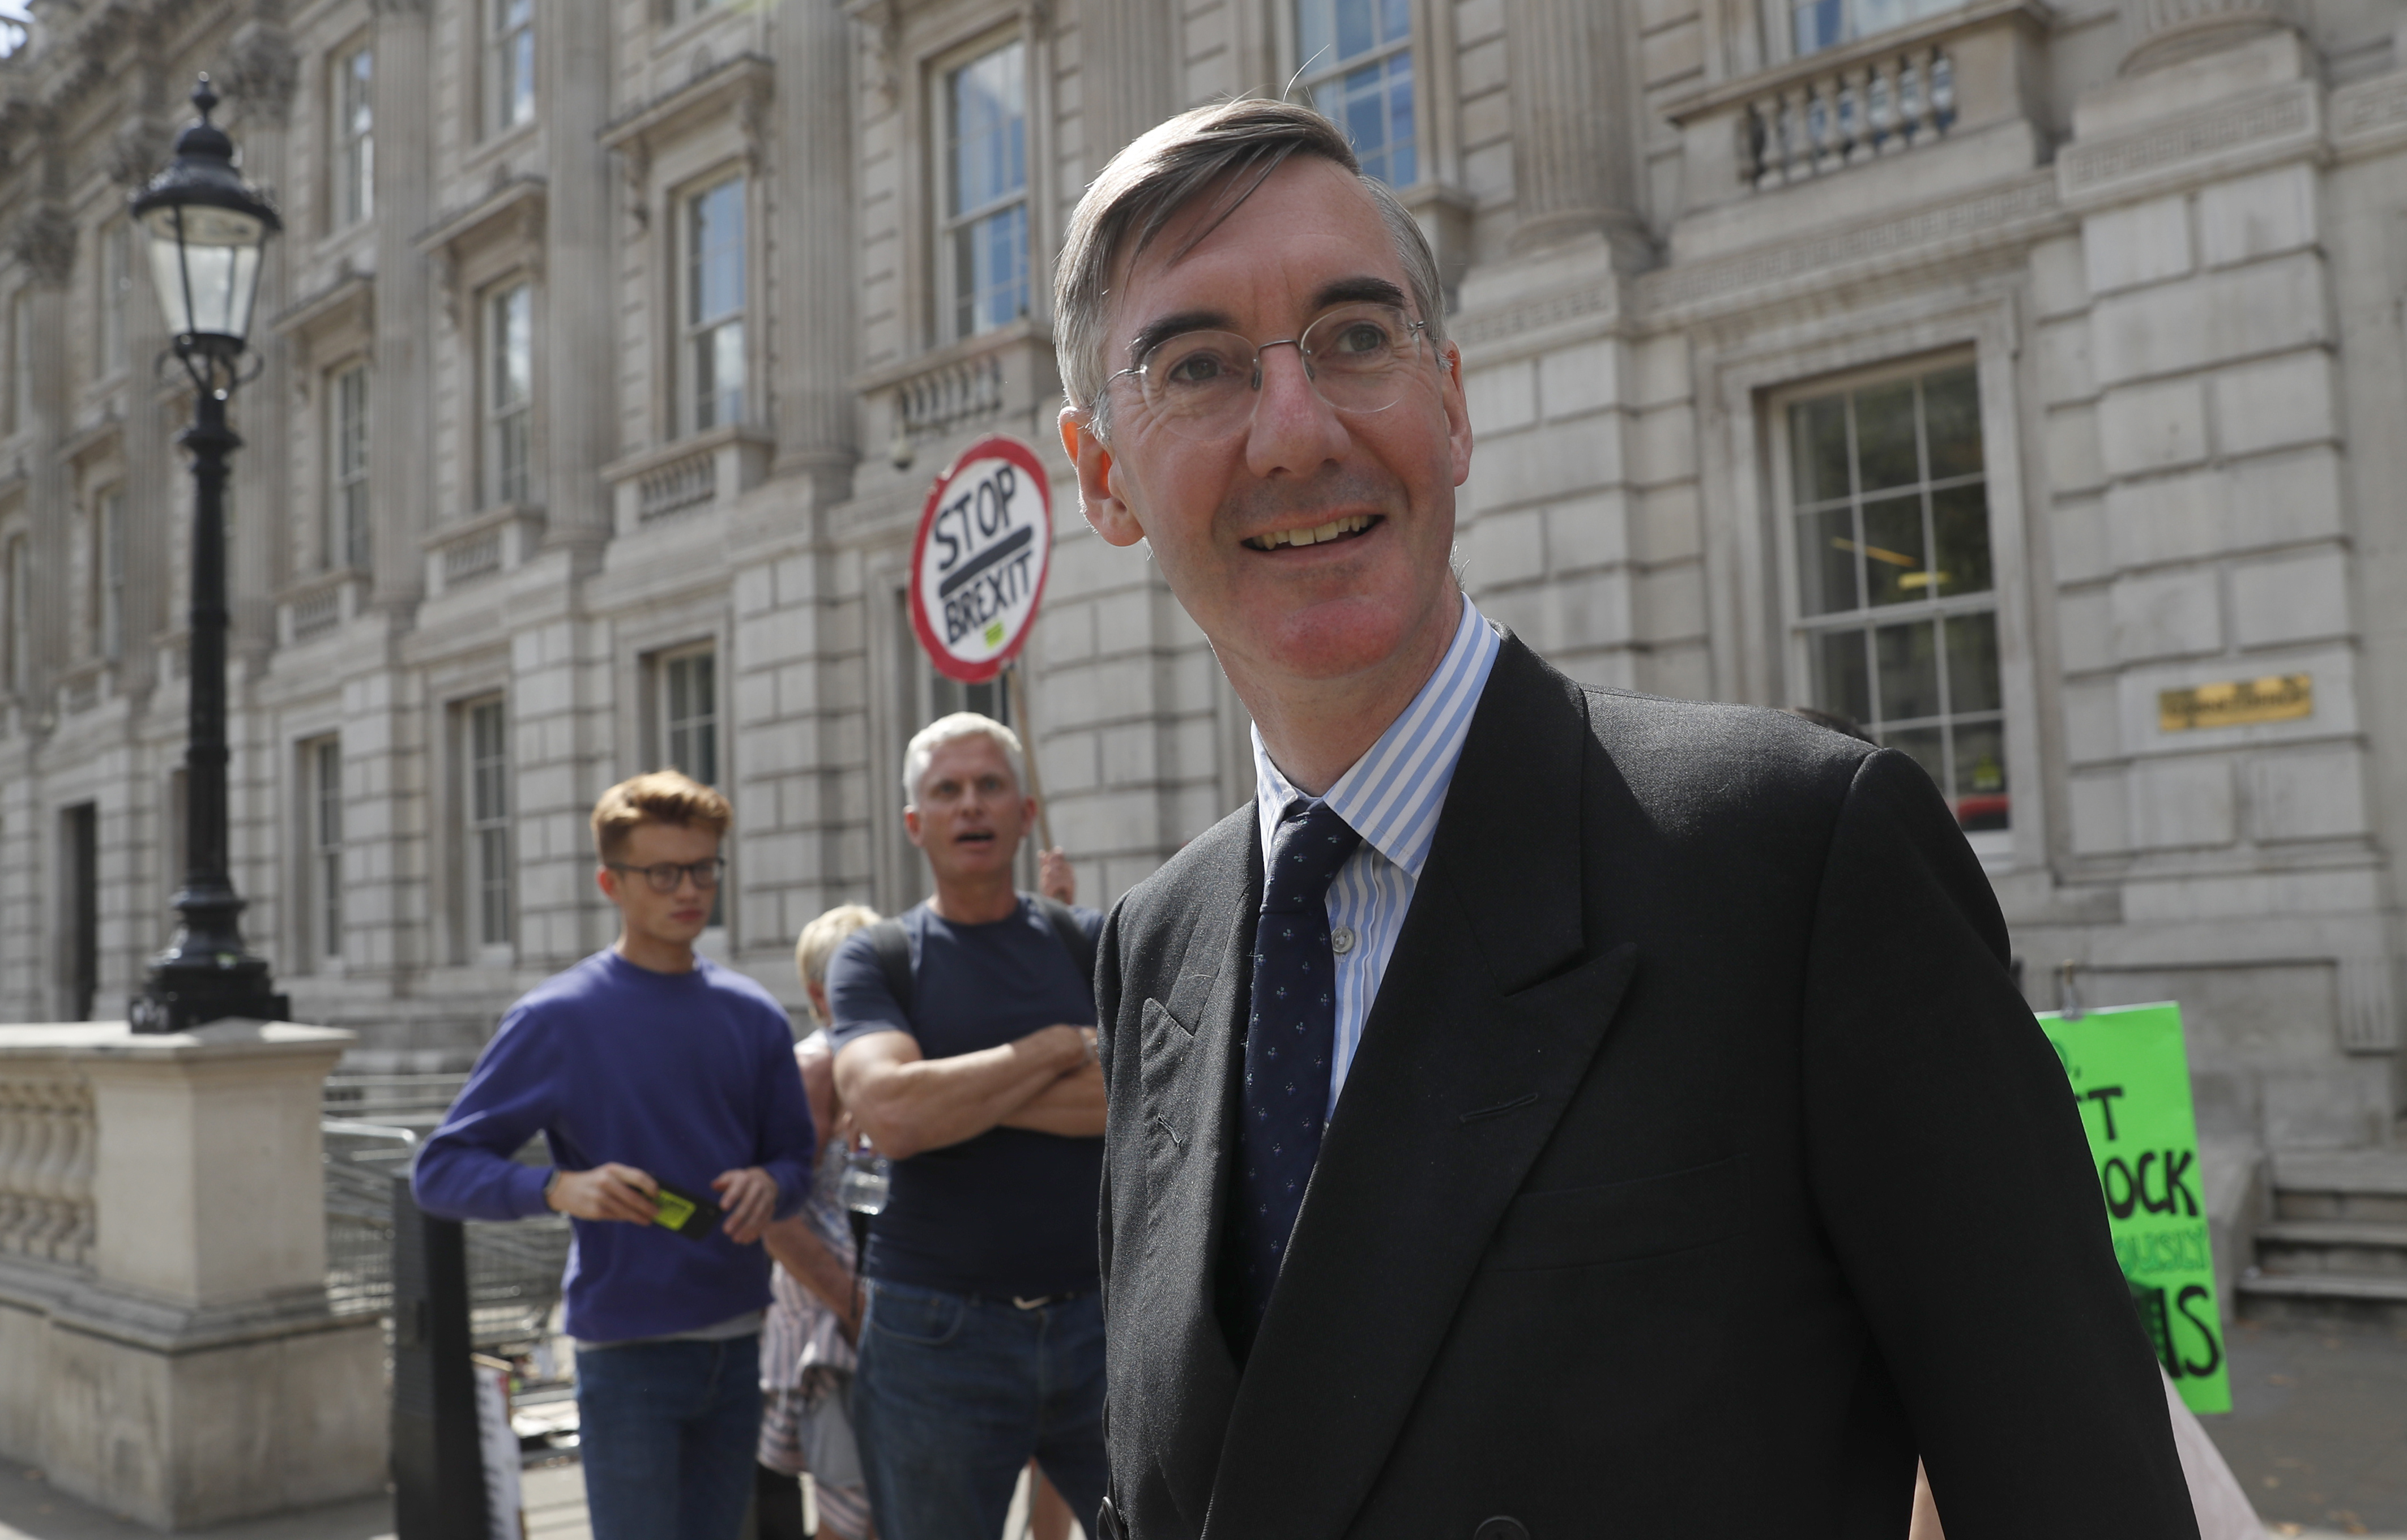 British lawmaker Jacob Rees-Mogg, Leader of the House of Commons, leaves the Cabinet Office in London, Monday, Sept. 2, 2019. Political opposition to Prime Minister Boris Johnson's move to suspend Parliament is crystalizing, with protests around Britain and a petition to block the move gaining more than 1 million signatures. (AP Photo/Alastair Grant)